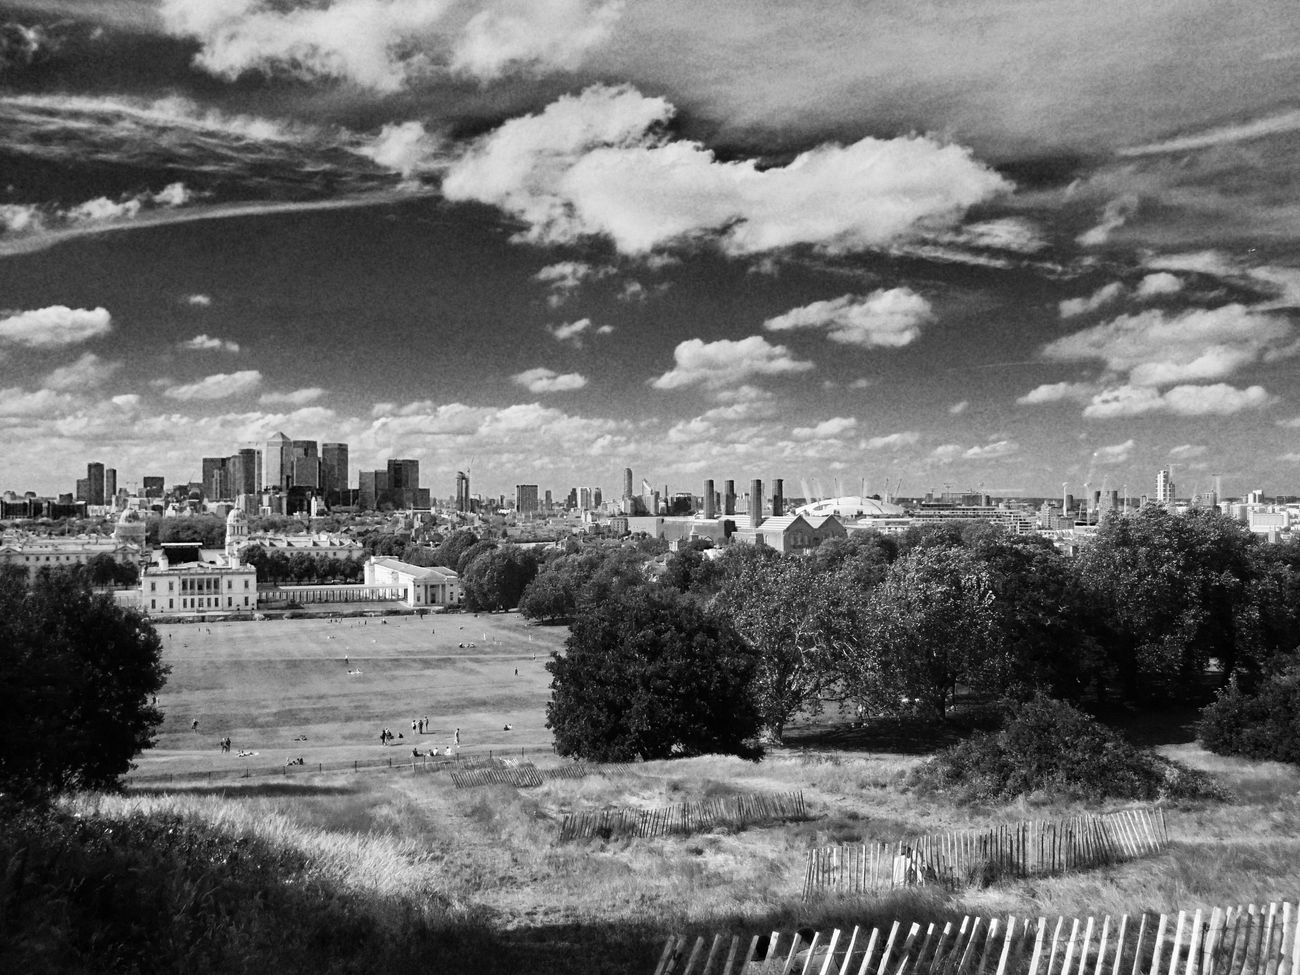 Blackandwhite Canary Wharf Cityscape Greenwich Park Isle Of Dogs. London London The O2 Arena Travel Destinations